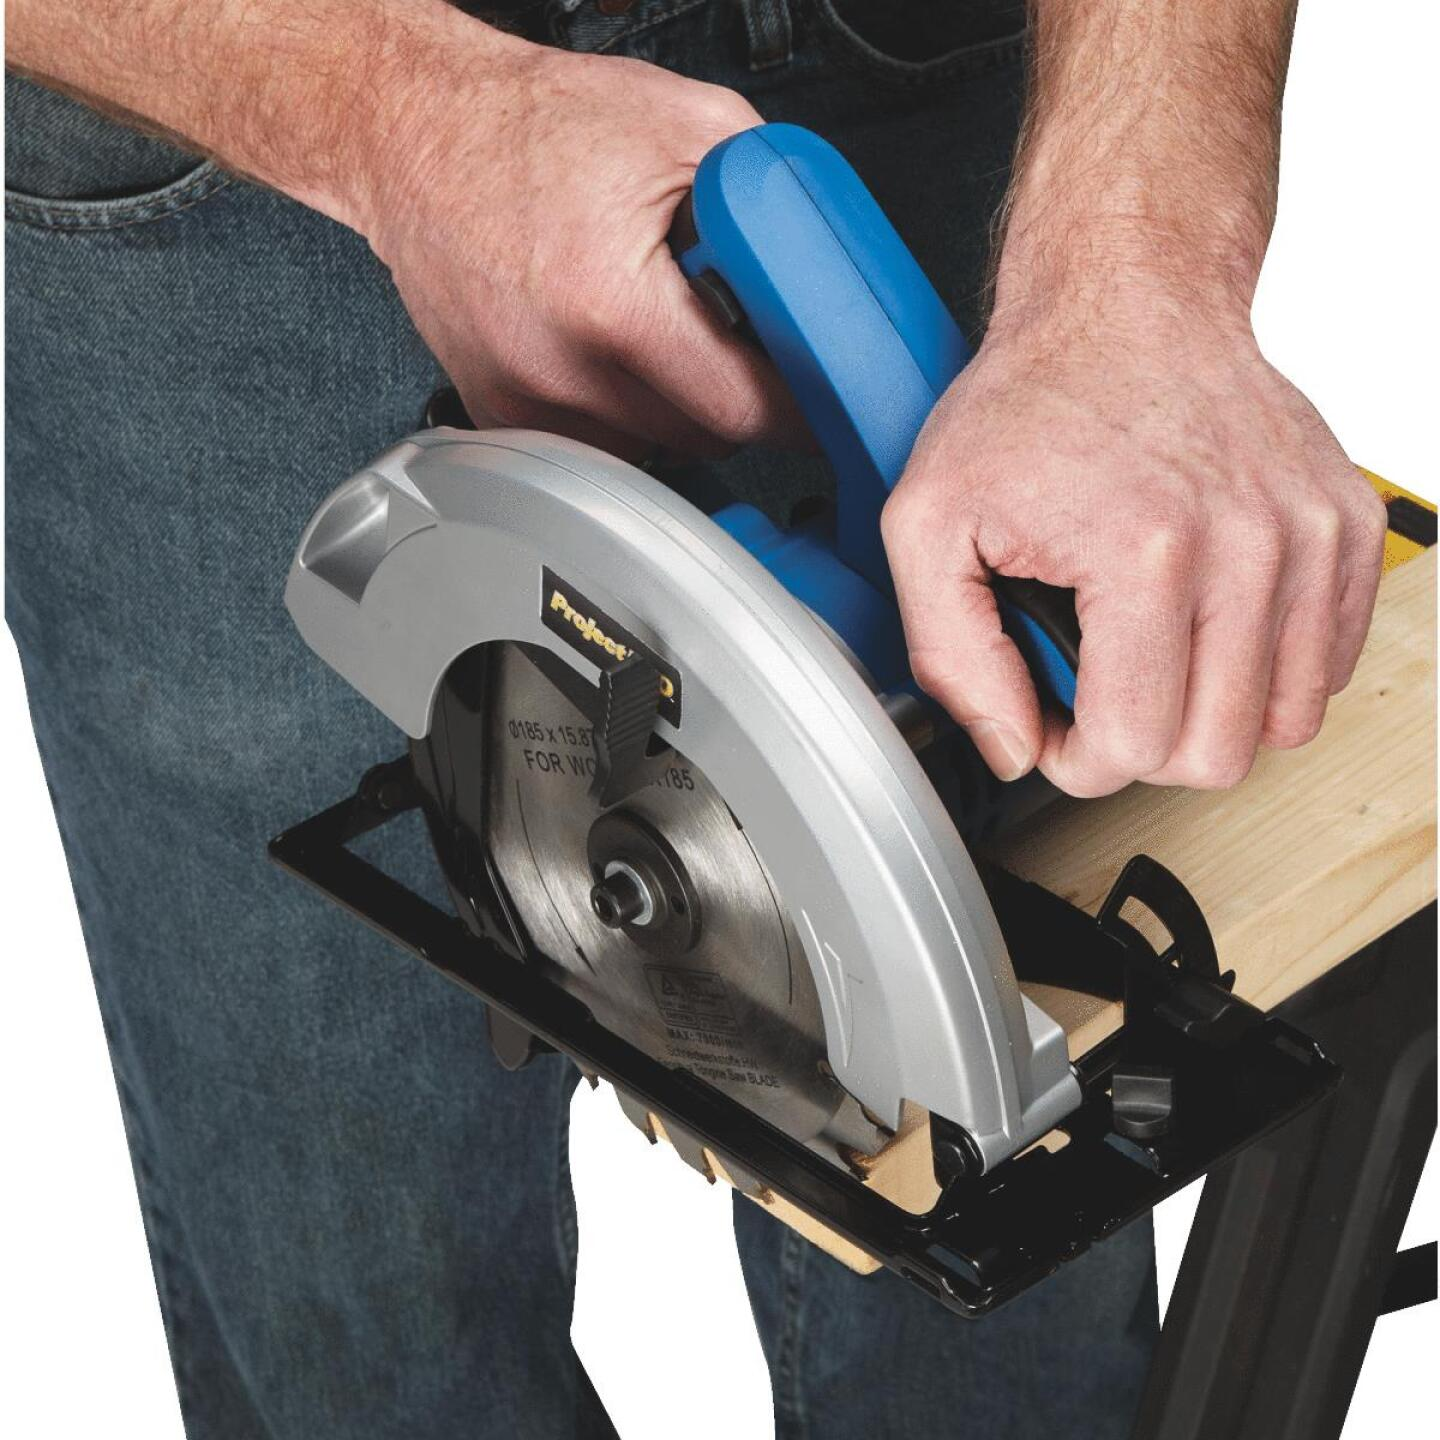 Project Pro 7-1/4 In. 12-Amp Circular Saw Image 4